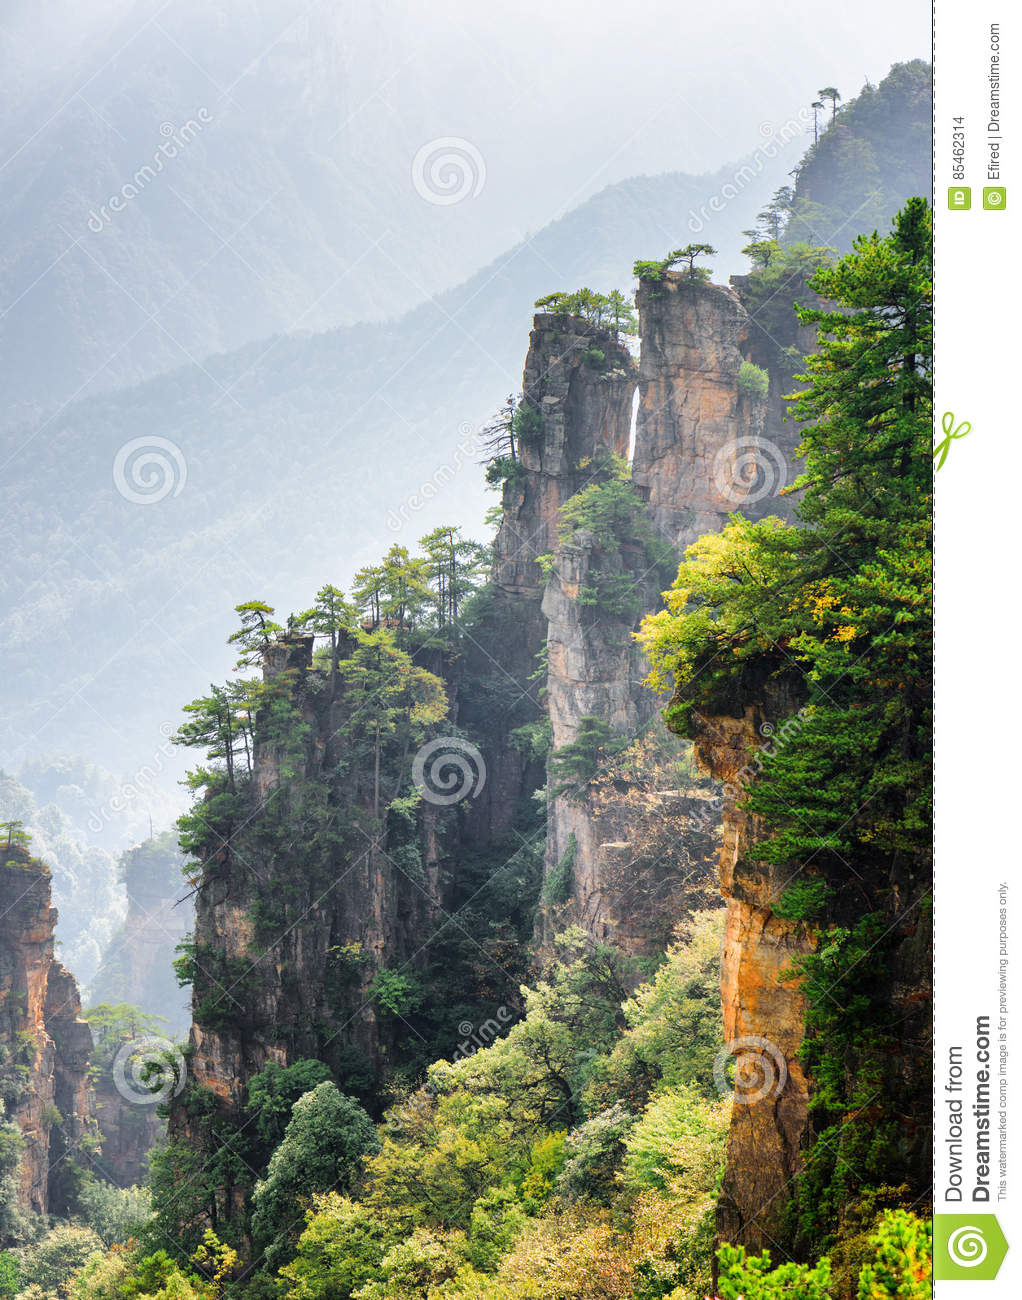 Fantastic view of trees growing on steep cliffs Avatar Rocks